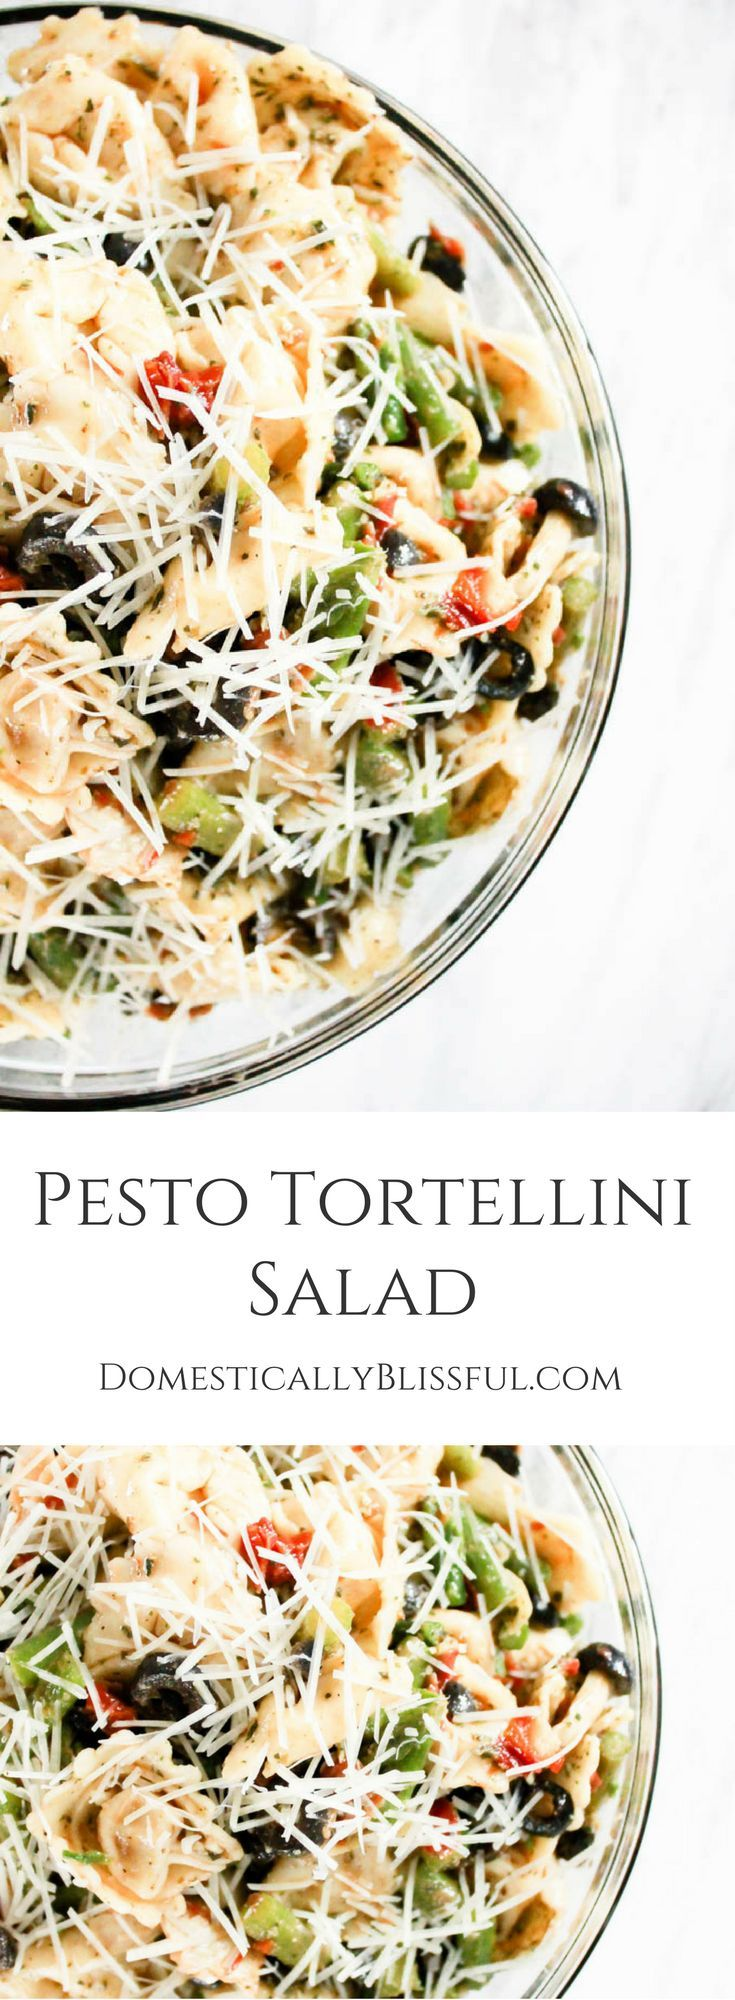 25+ best ideas about Cold Tortellini Salad on Pinterest ...